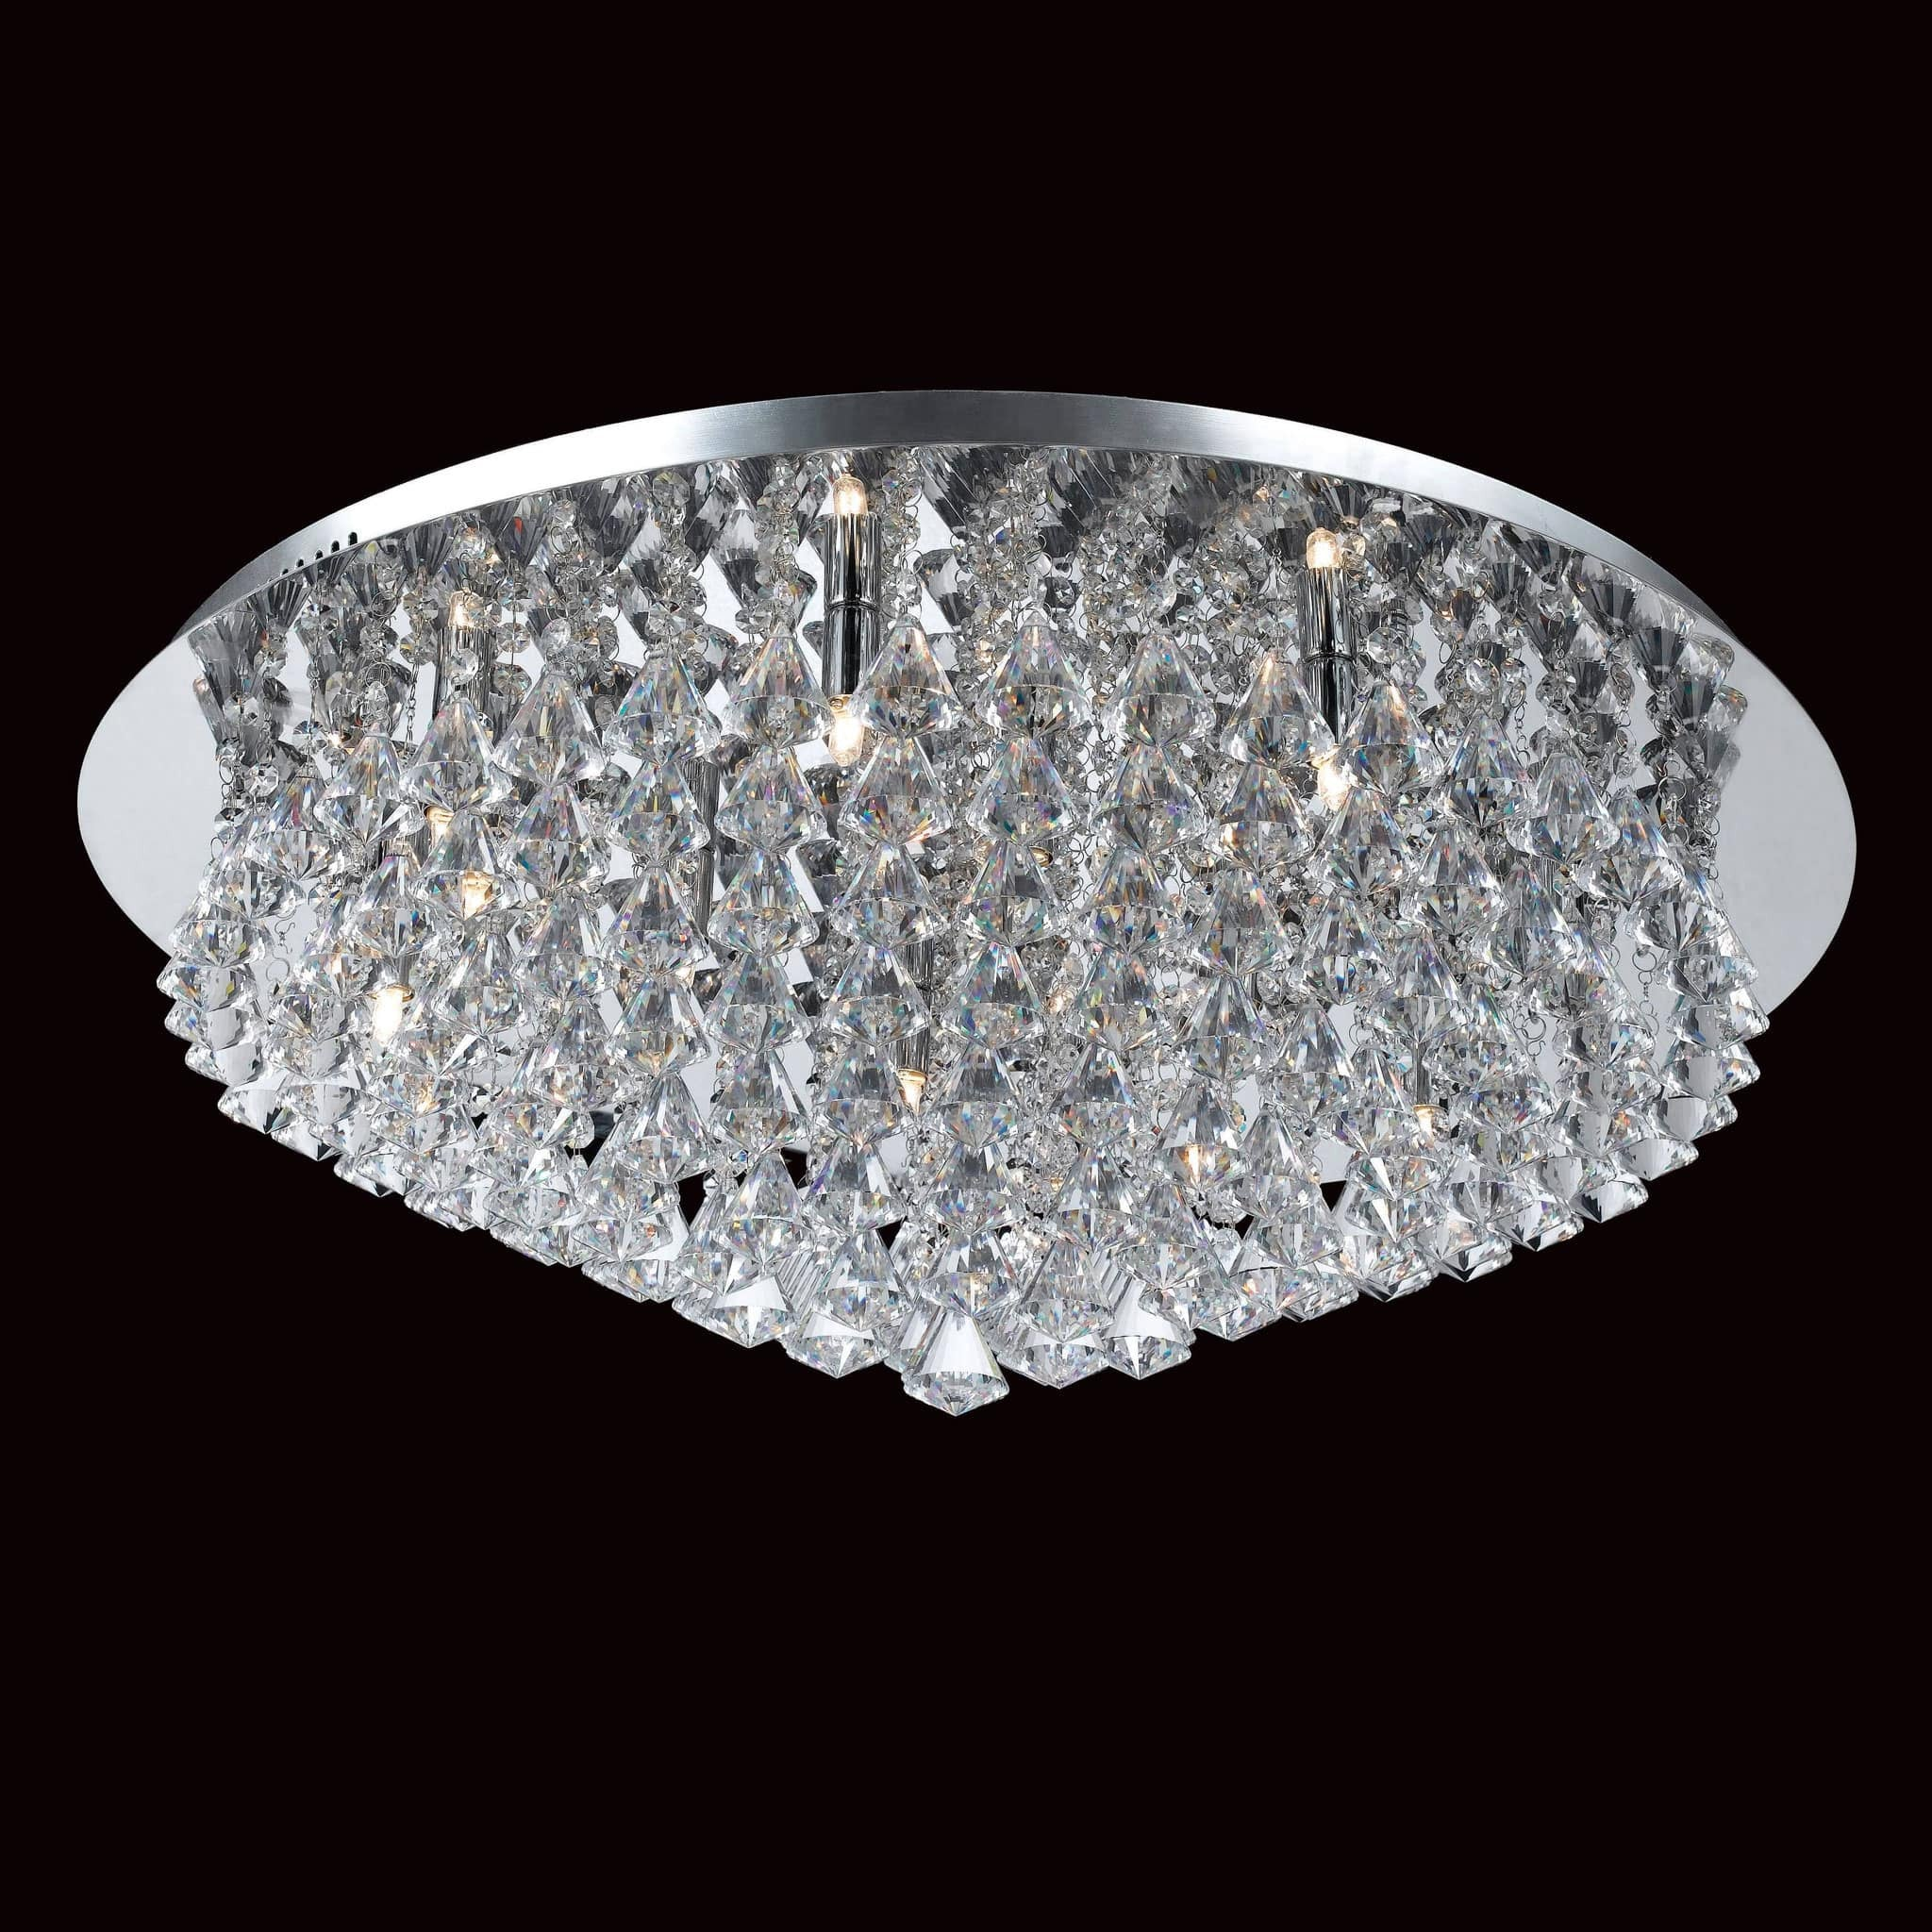 impex parma  light crystal flush chandelier in chrome - impex parma  light crystal flush chandelier in chrome cfhch